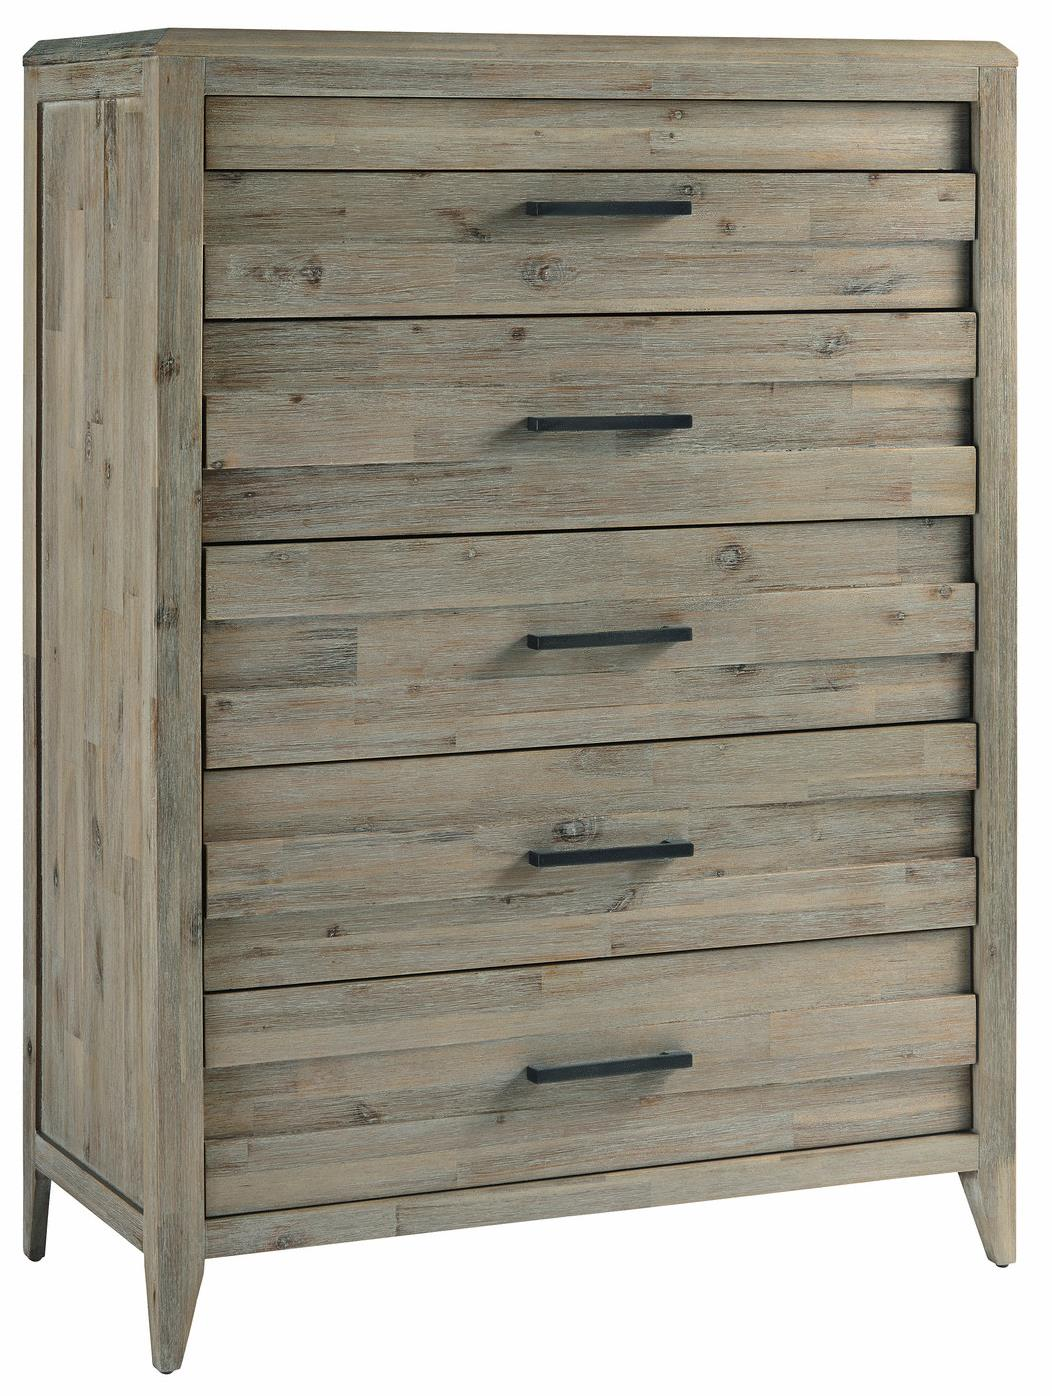 Morris Home Furnishings Westwood Westwood 5-Drawer Chest of Drawers - Item Number: 372-436